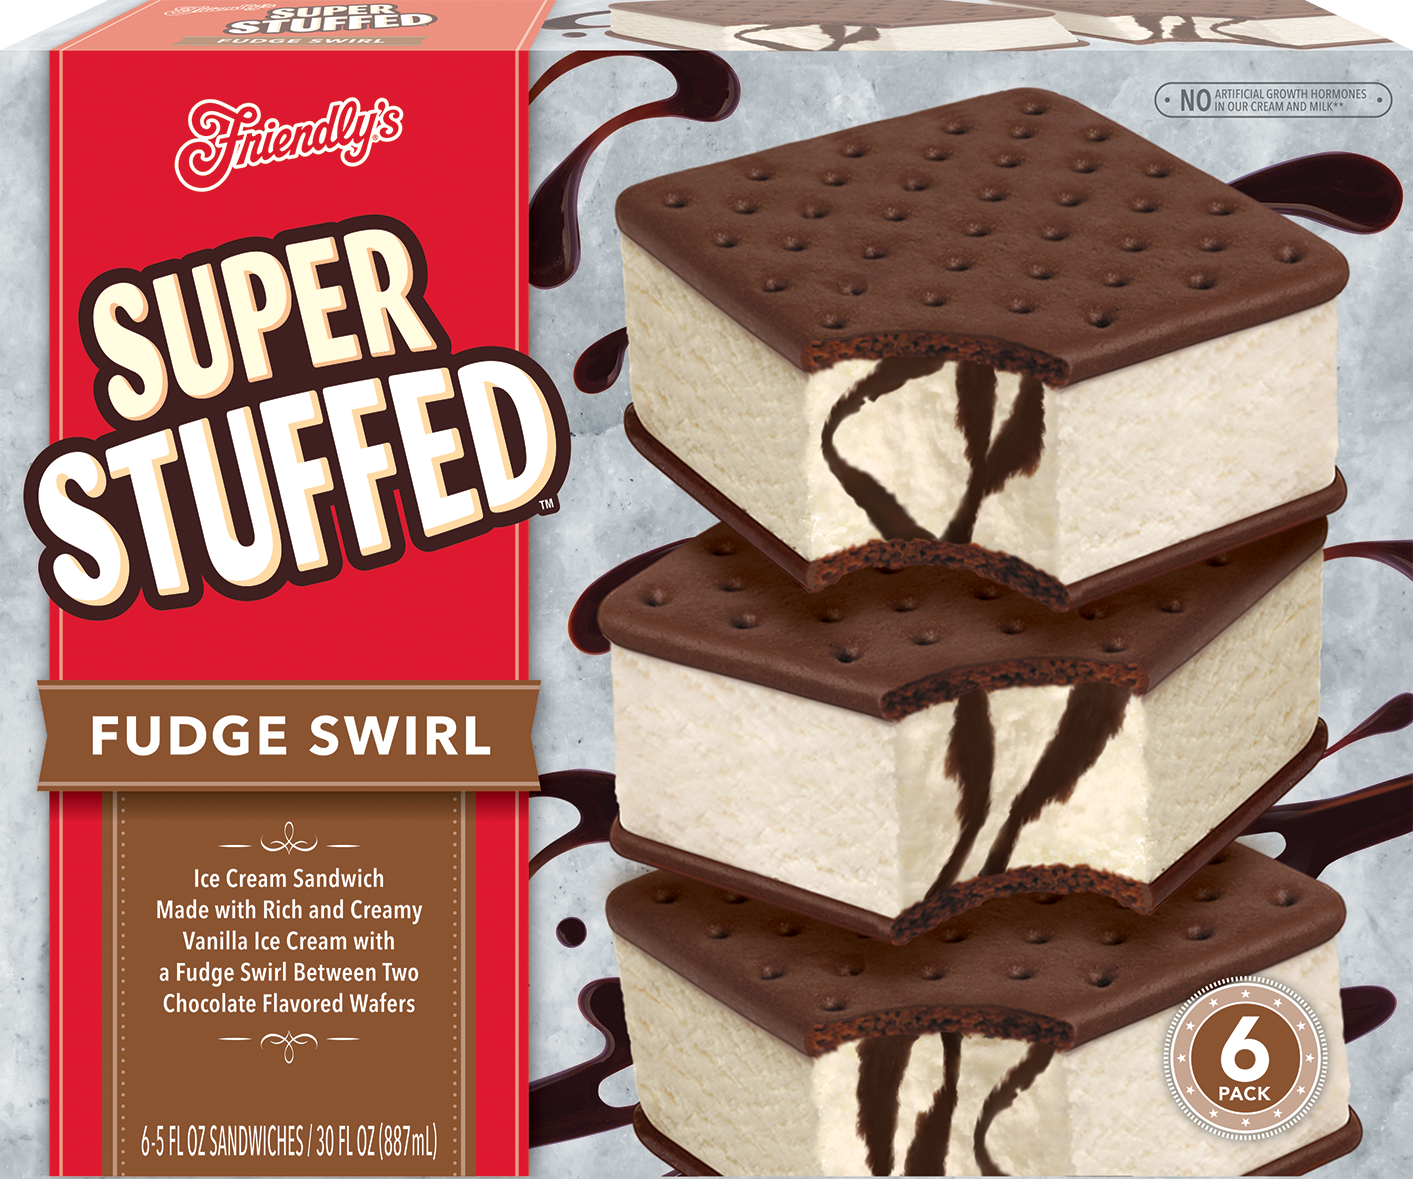 Fudge Swirl Super Stuffed